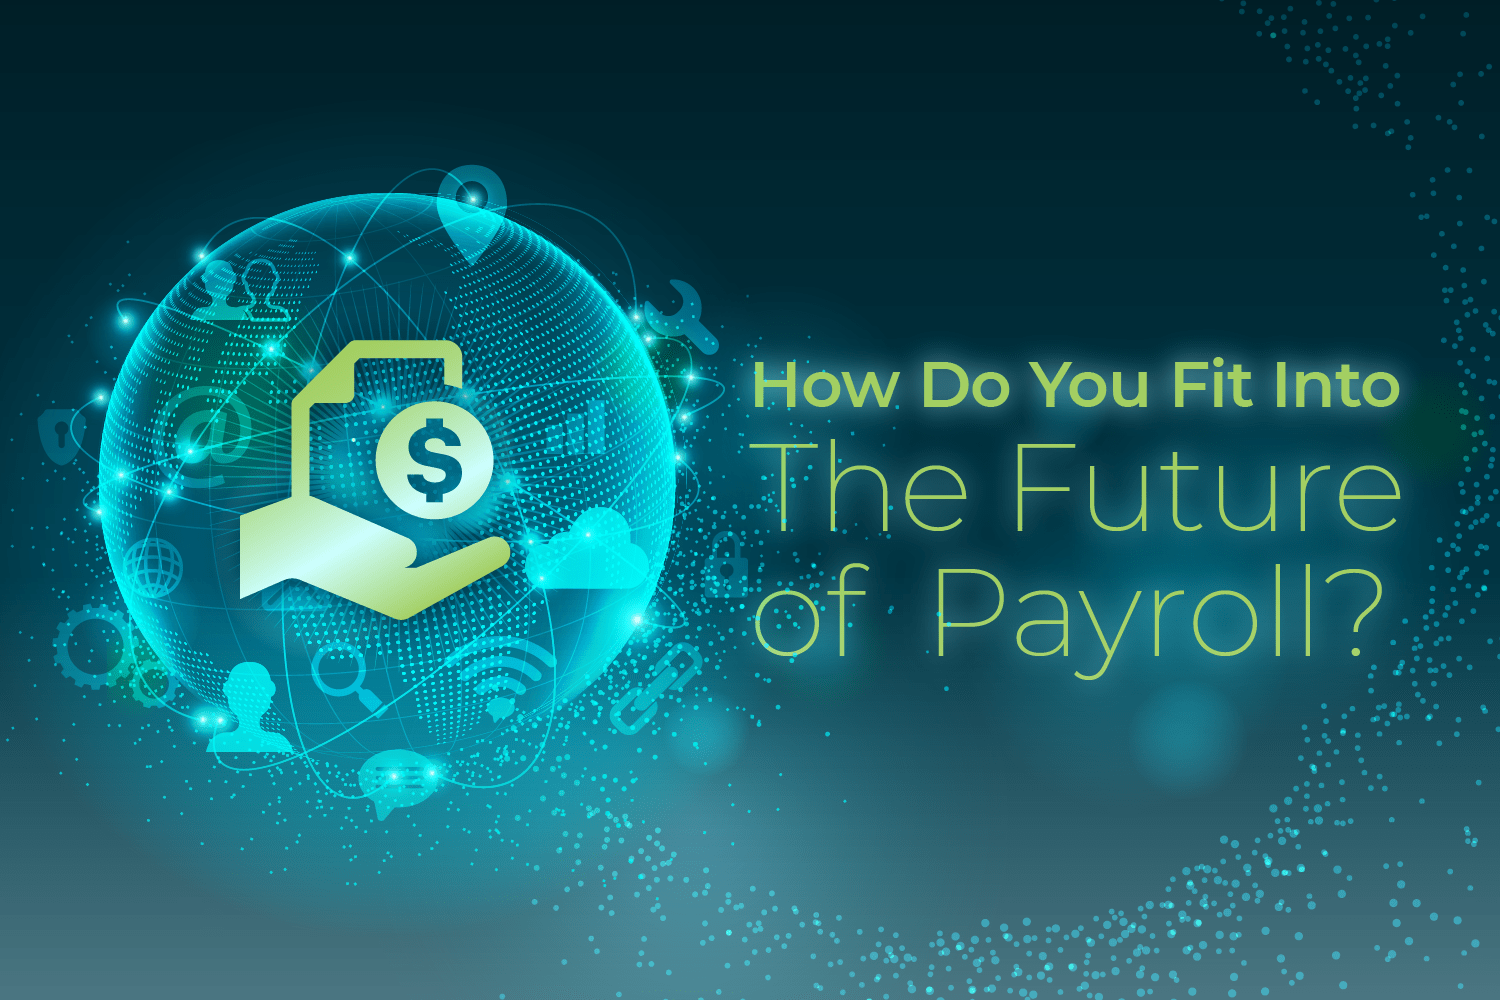 How do you fit into the future of payroll?